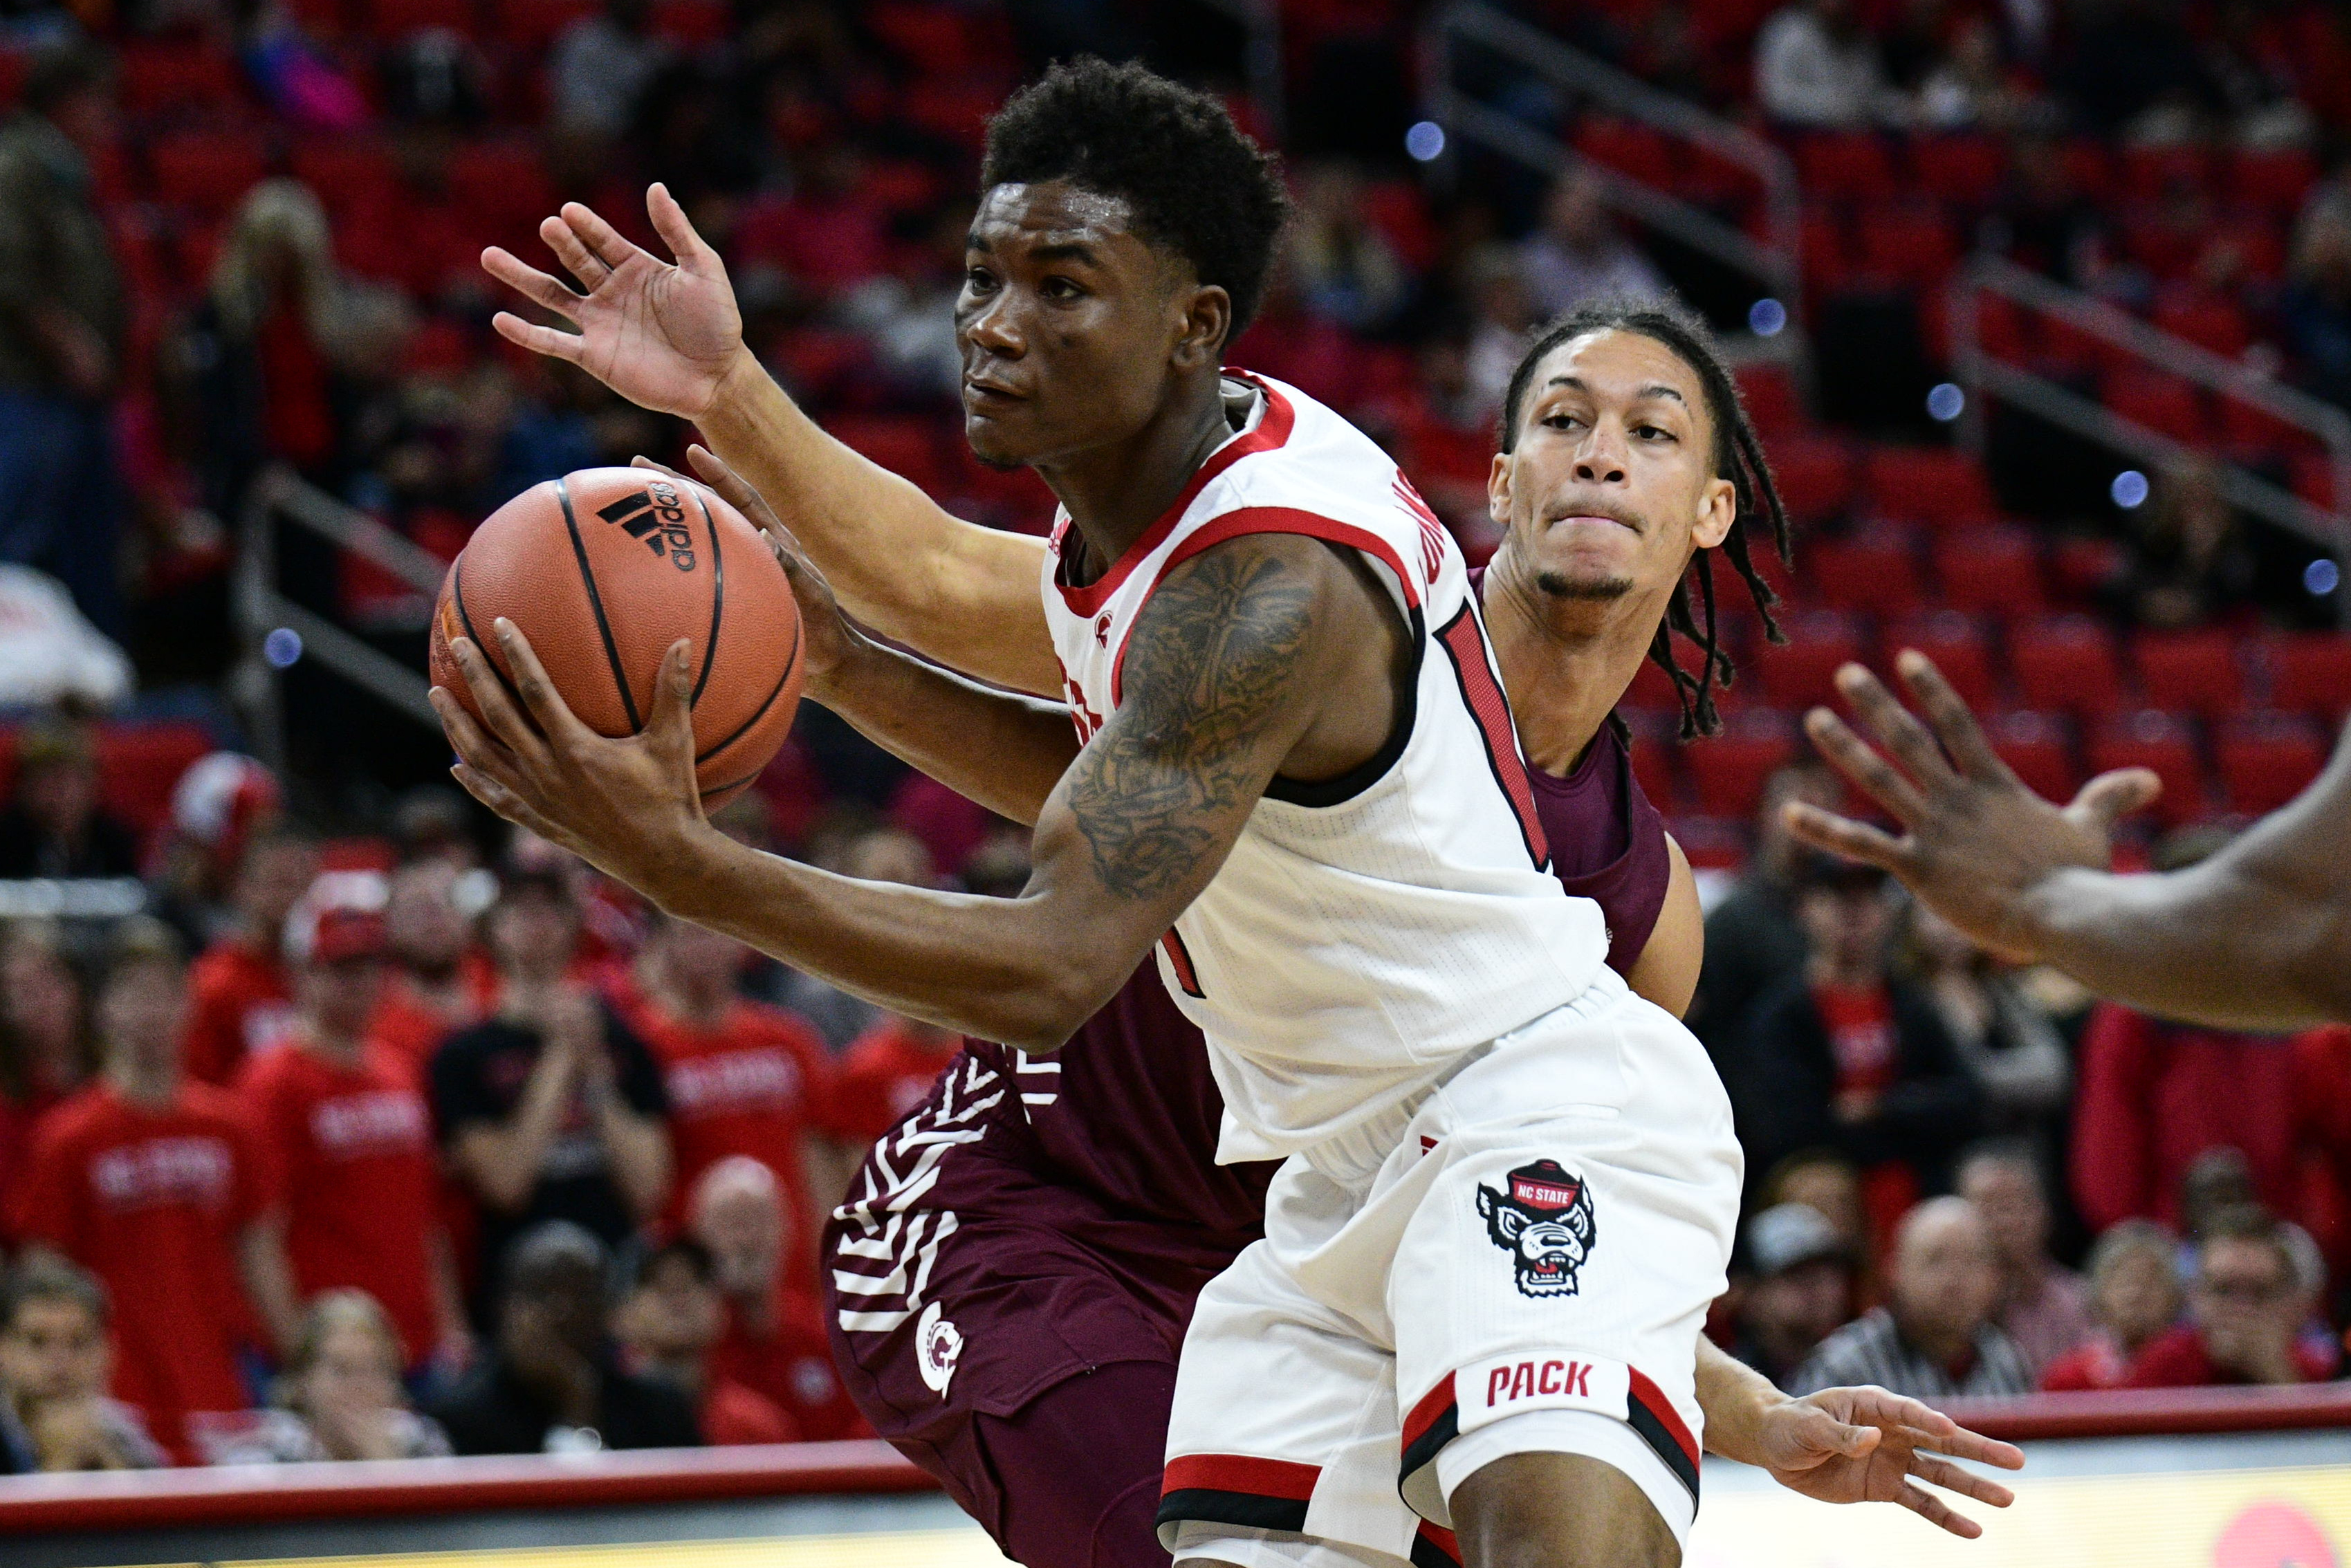 COLLEGE BASKETBALL: NOV 23 Arkansas-Little Rock at NC State